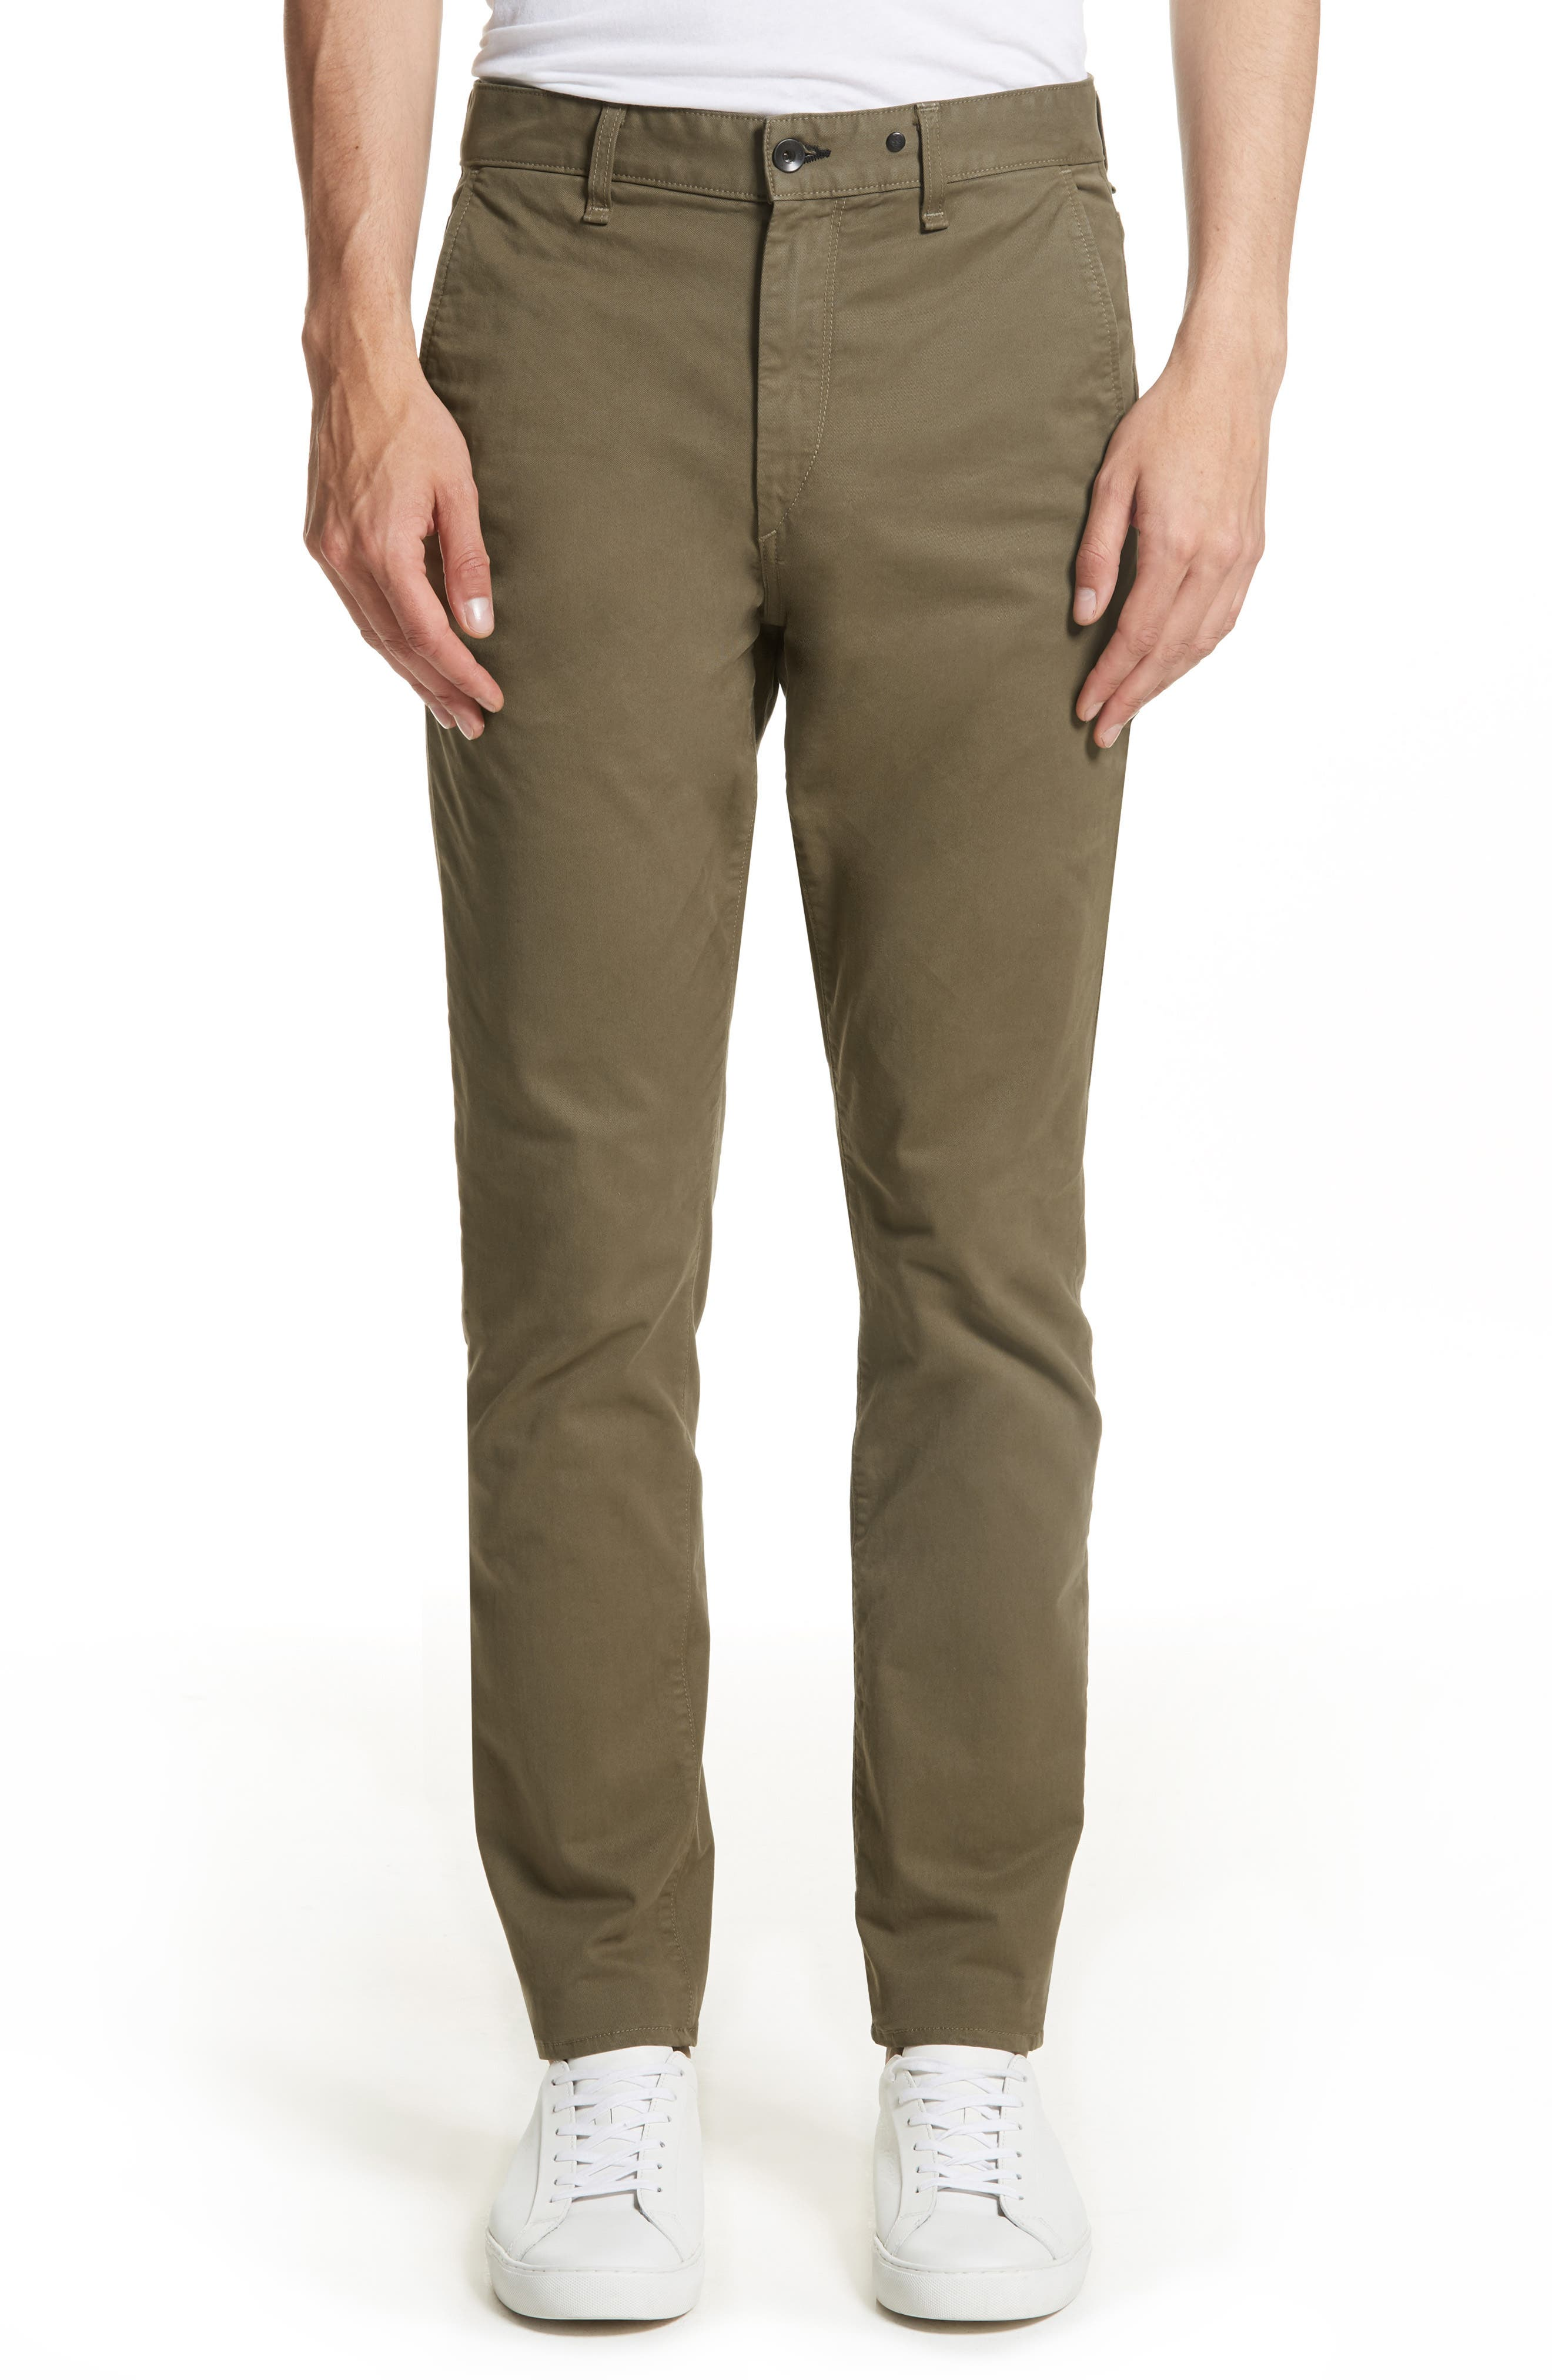 Fit 2 Chinos,                         Main,                         color, ARMY